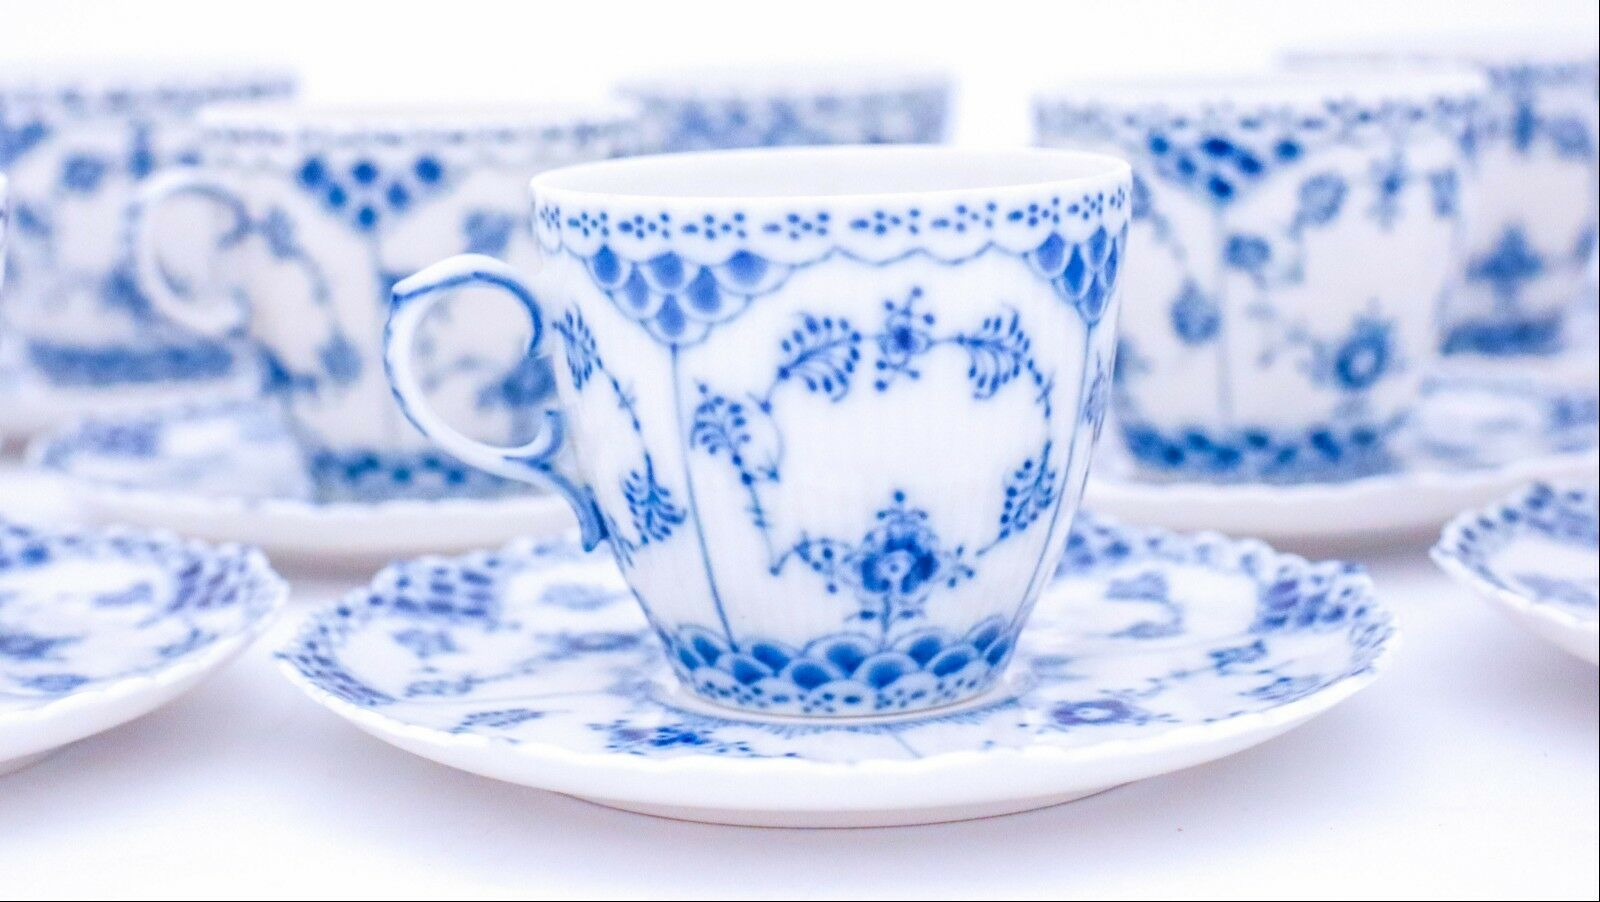 Image 4 - 12 Cups & Saucers #1035 - Blue Fluted Royal Copenhagen Full Lace - 1:st Quality